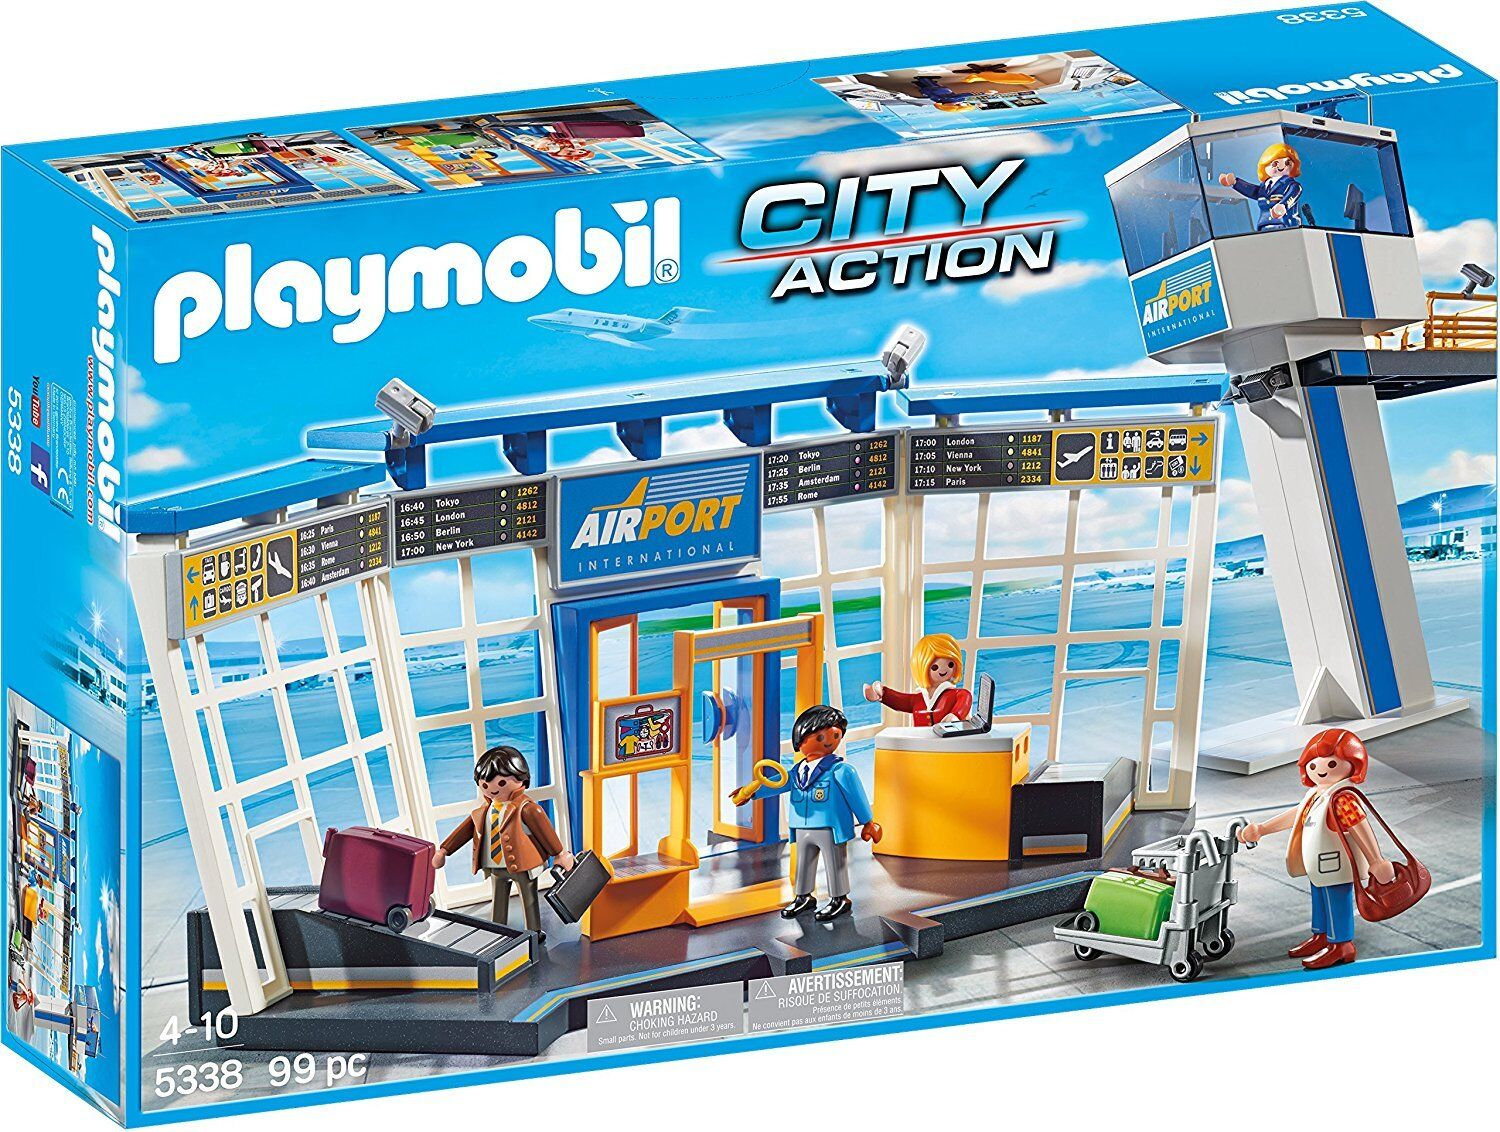 Playmobil City action 5338. Turm der Bedienung